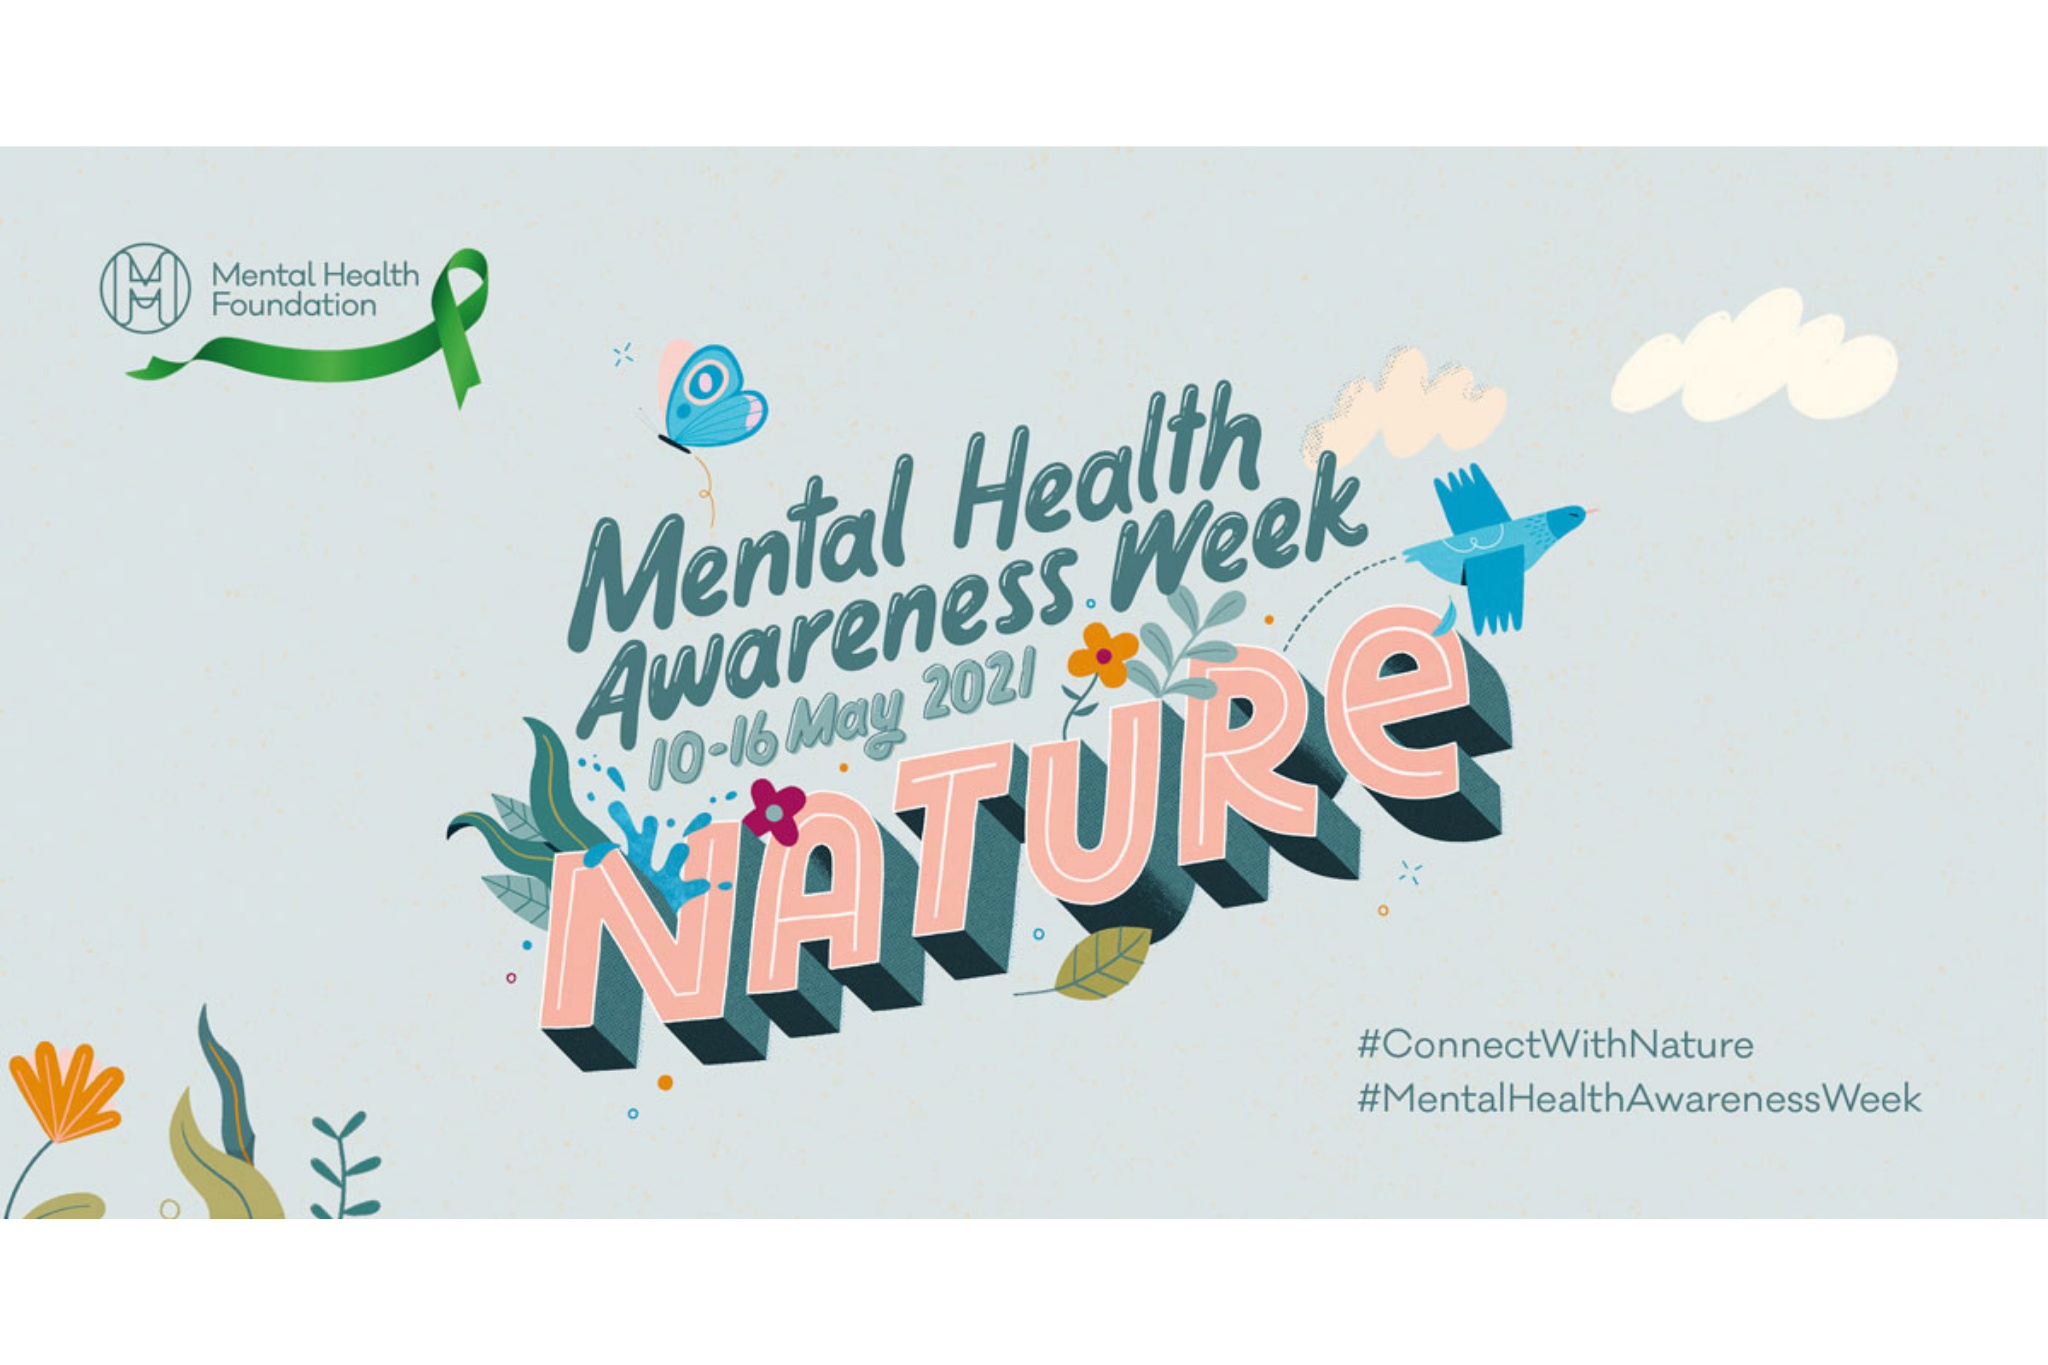 It's Mental Health Awareness Week! And the theme is how nature can benefit your mental health.